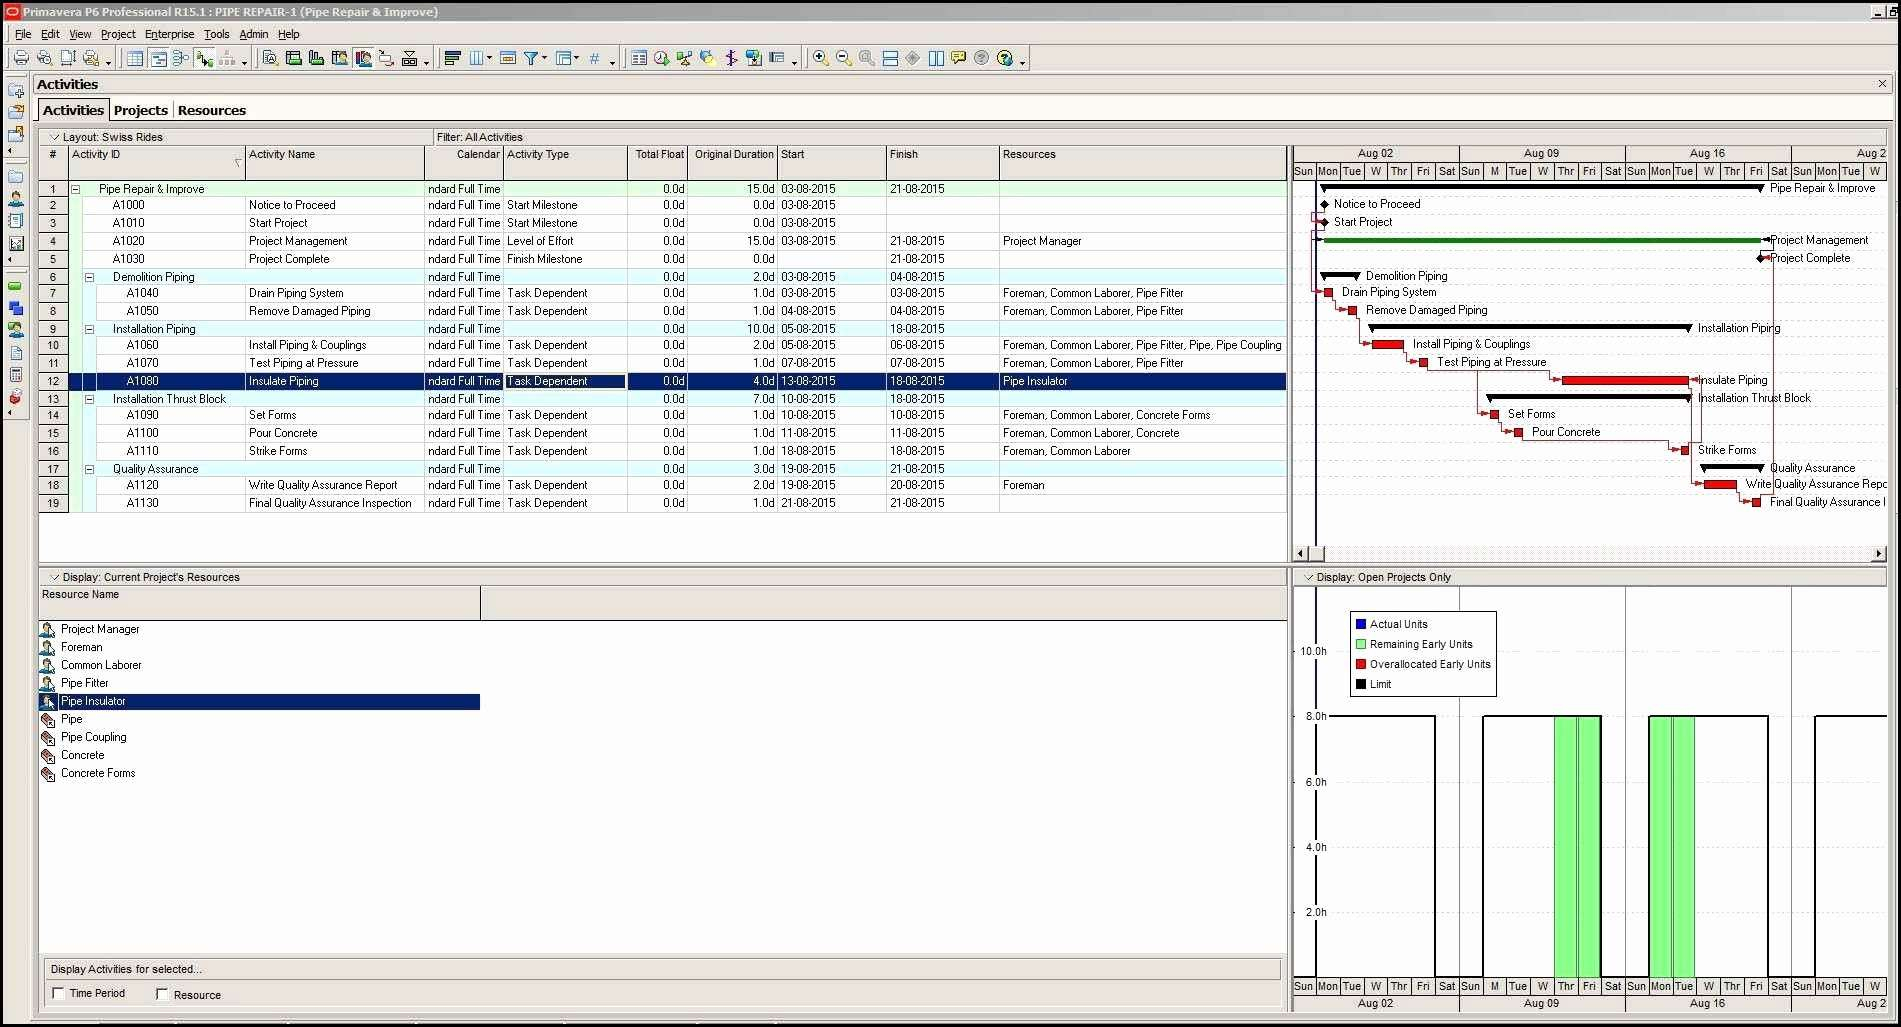 Weld Tracking Spreadsheet In Weld Tracking Spreadsheet Along With ˜† Asset Purchase Agreement